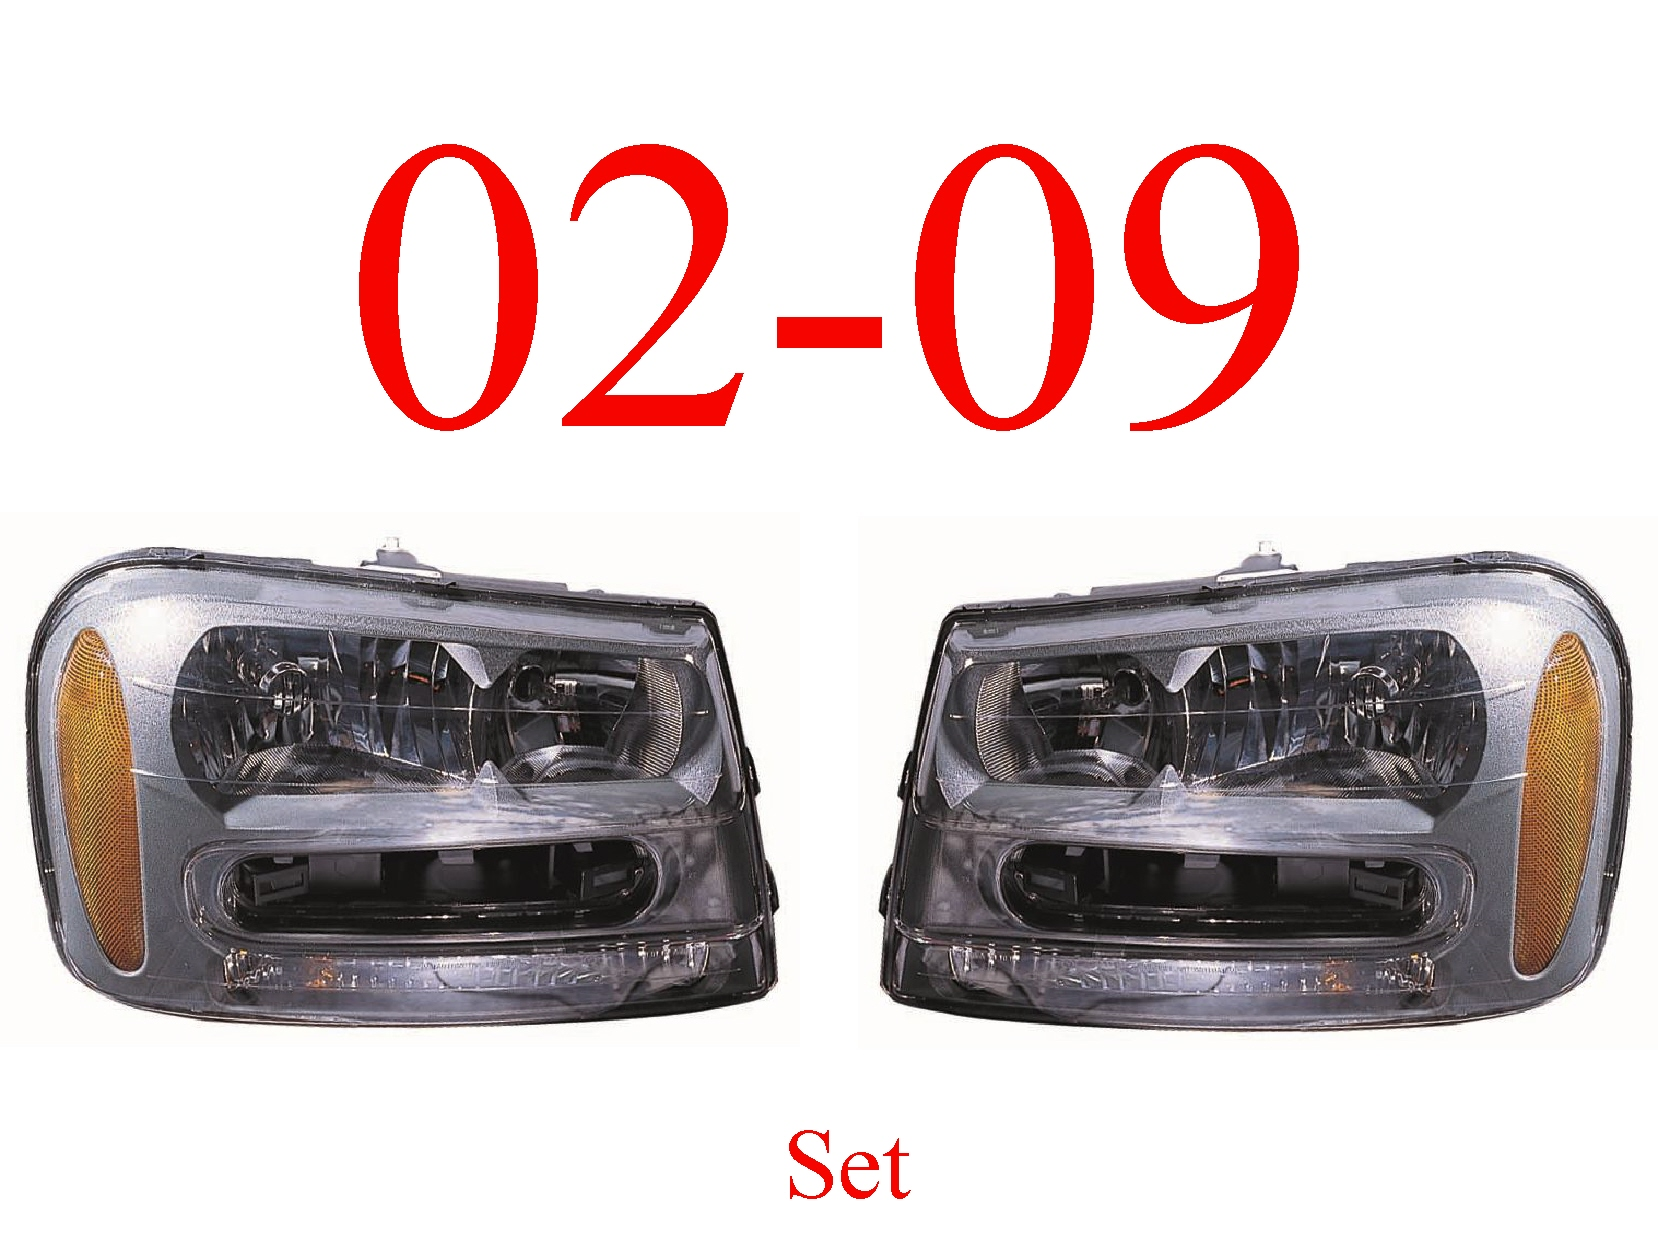 02-09 Trailblazer Head Light Set, Assembly